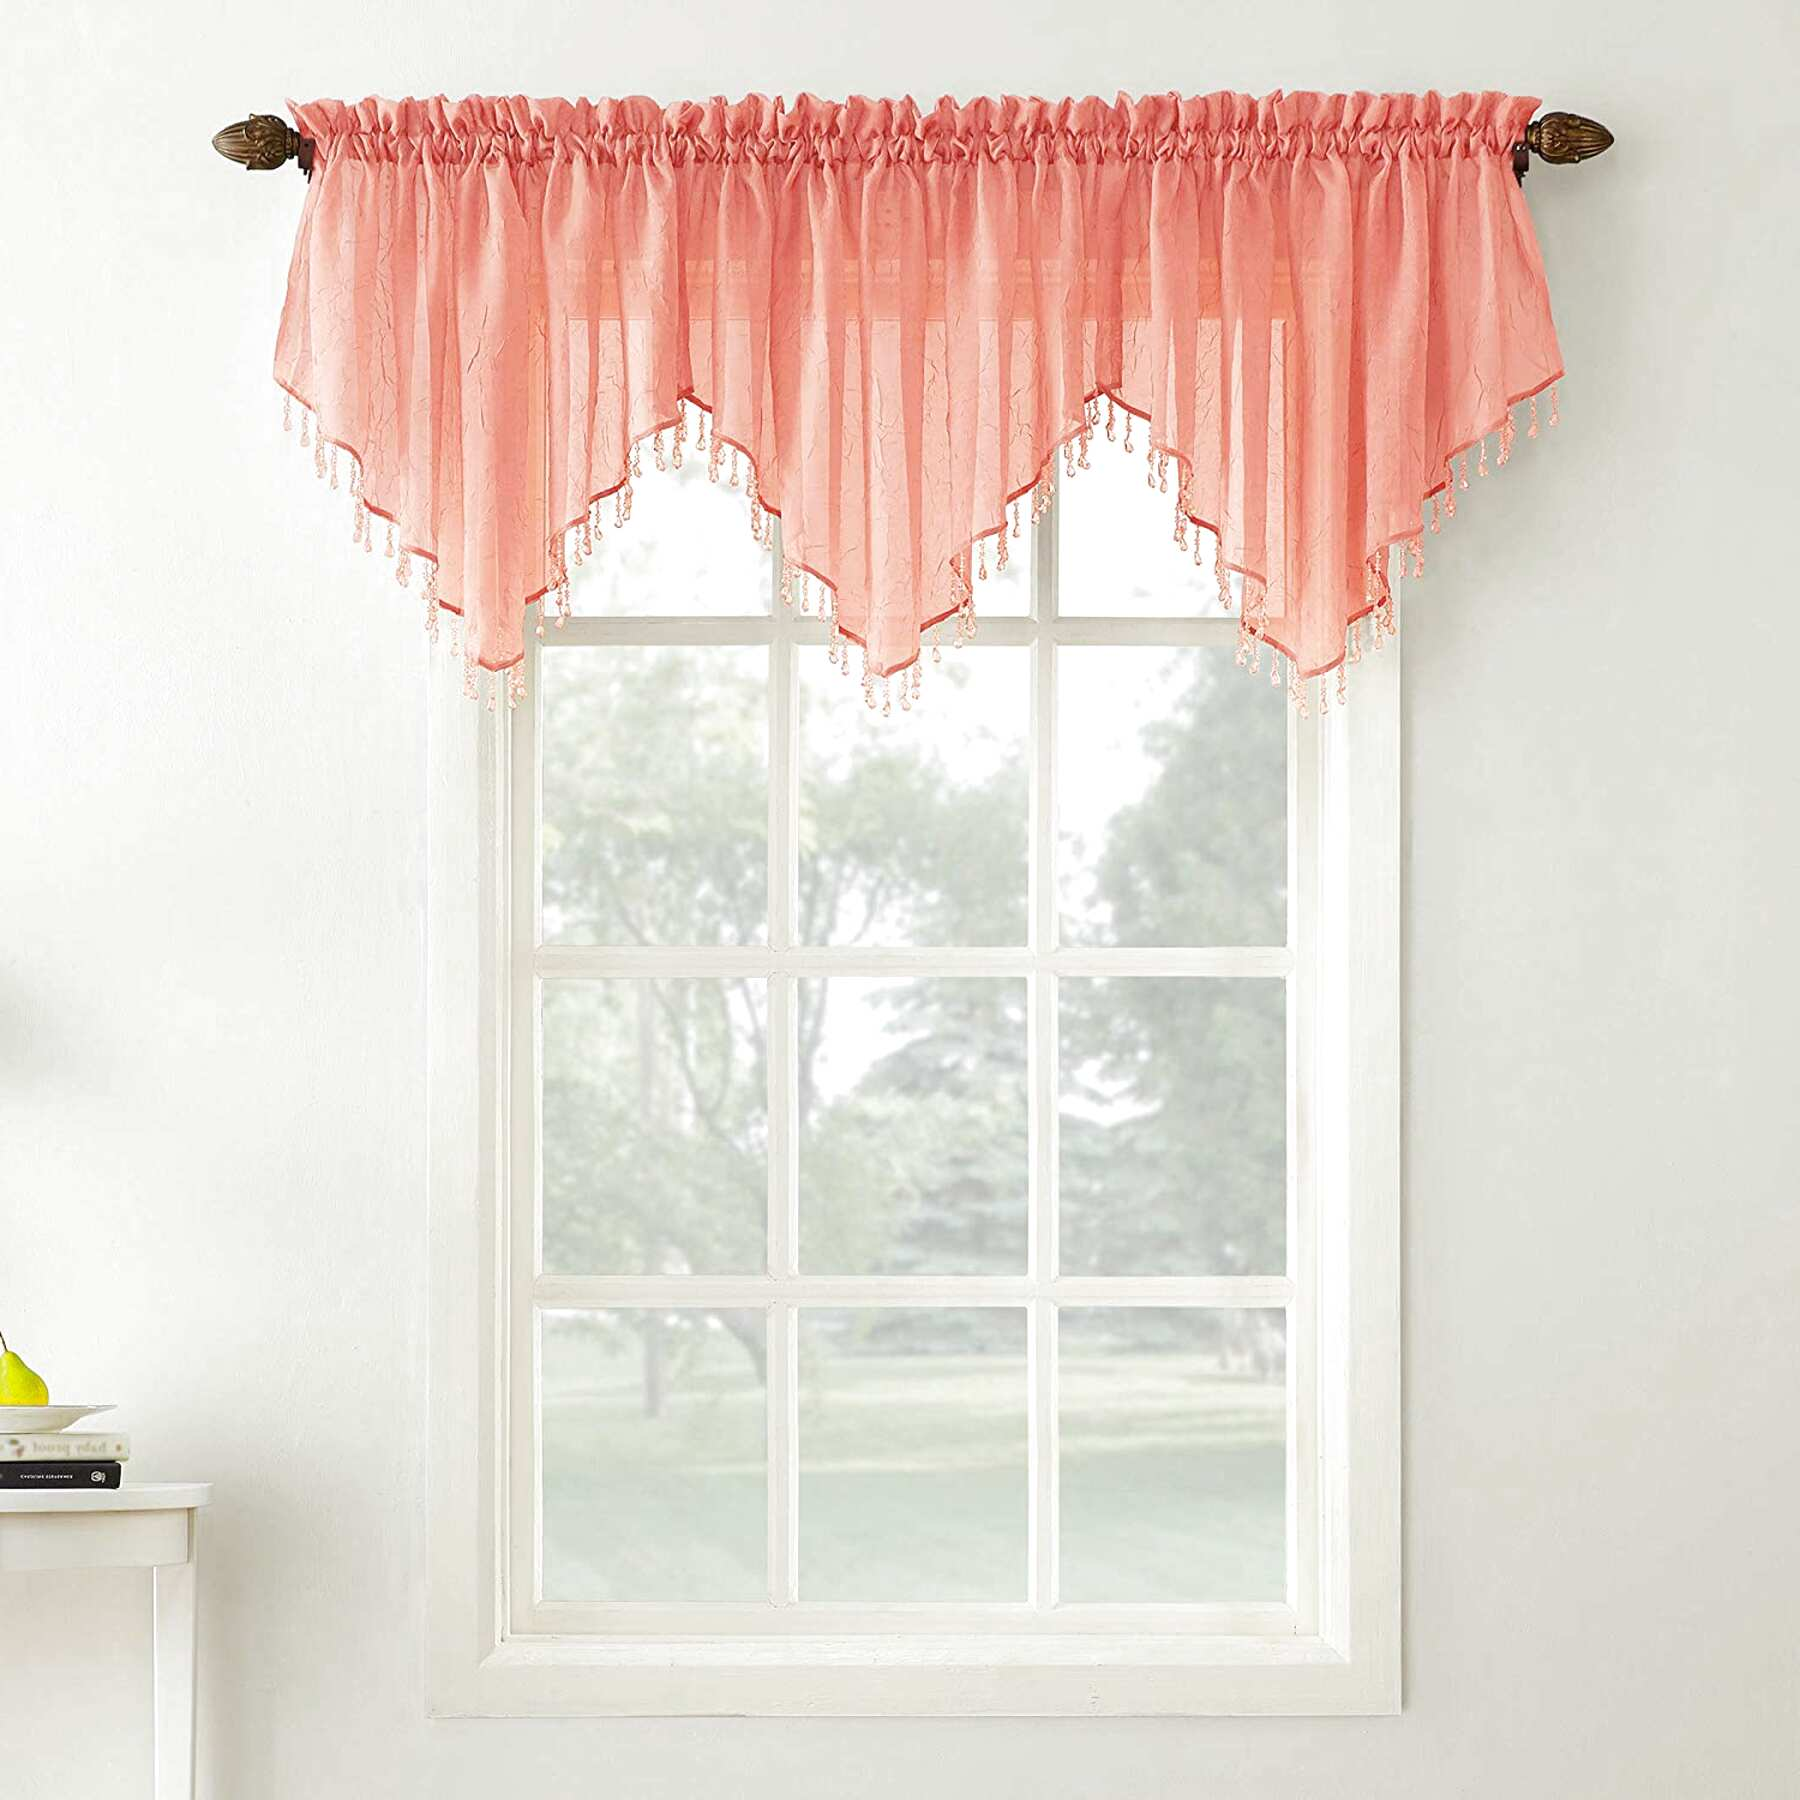 Curtain Valance For Sale In UK